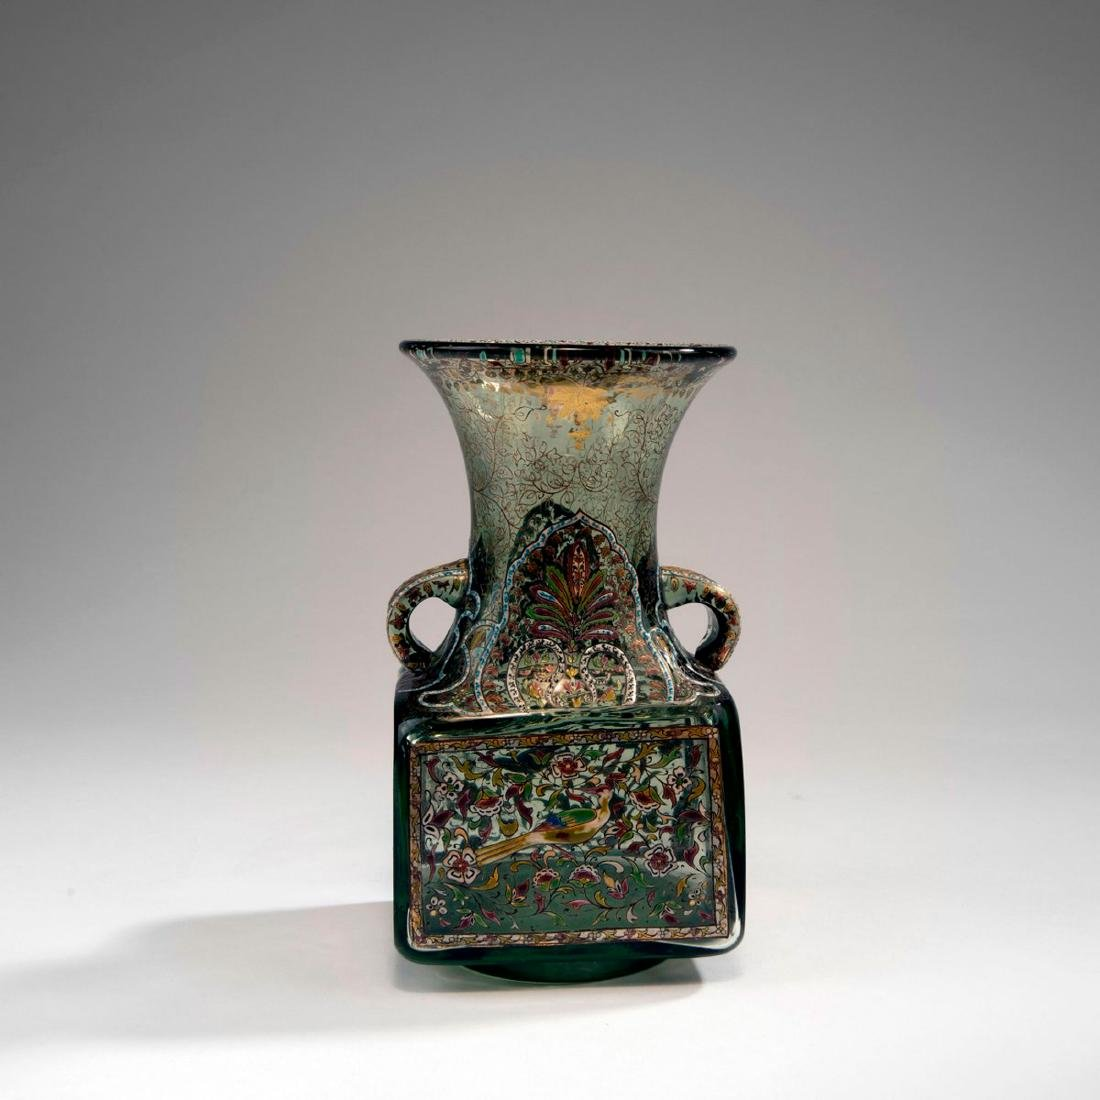 'Inspiration Persanne' vase with handles, c. 1880 - 2